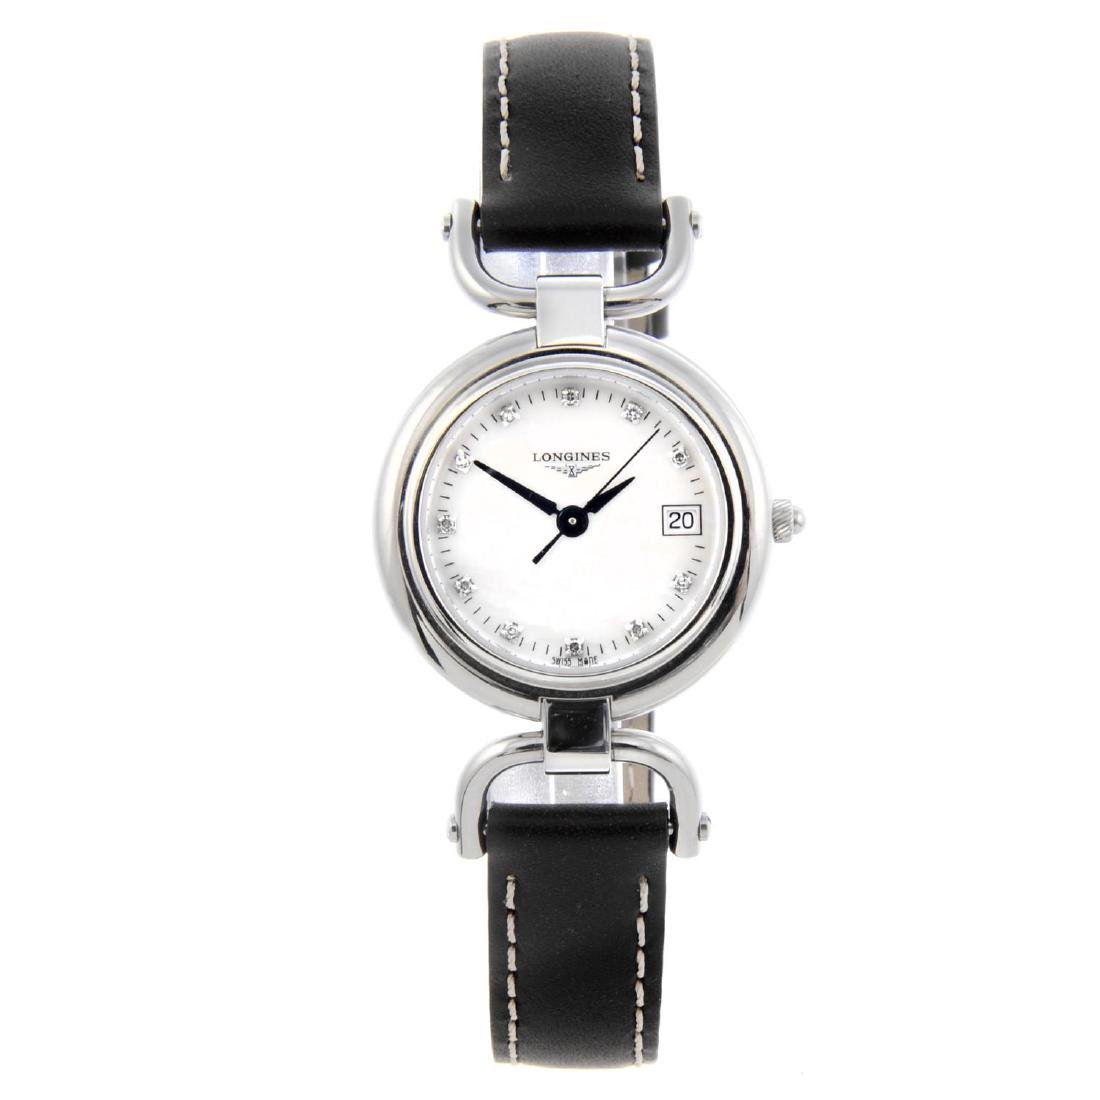 CURRENT MODEL: LONGINES - a lady's Equestrian